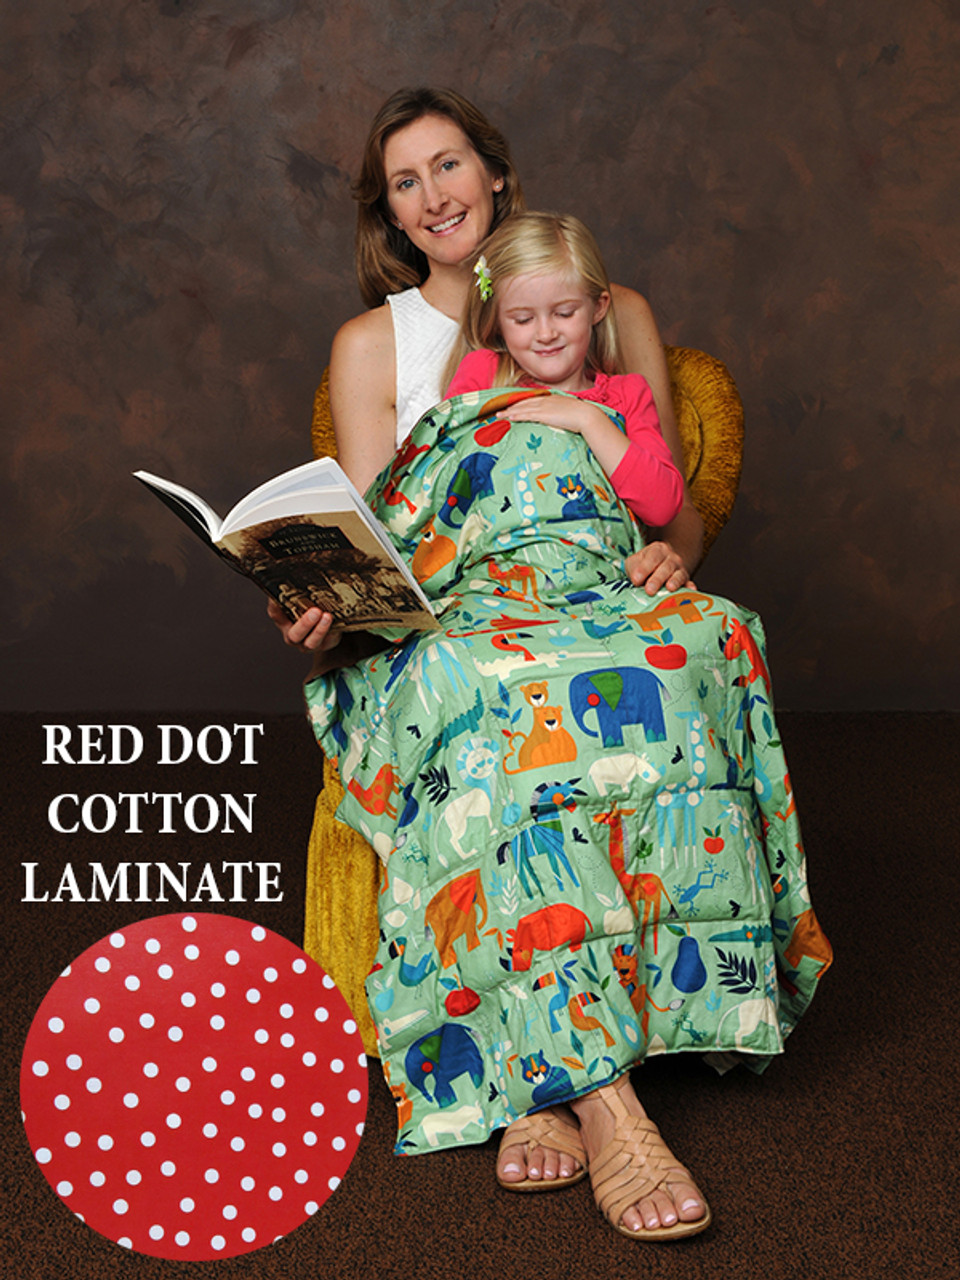 5 LB Weighted Blanket – Red Dot Laminate - Washable - OUTLET SALE